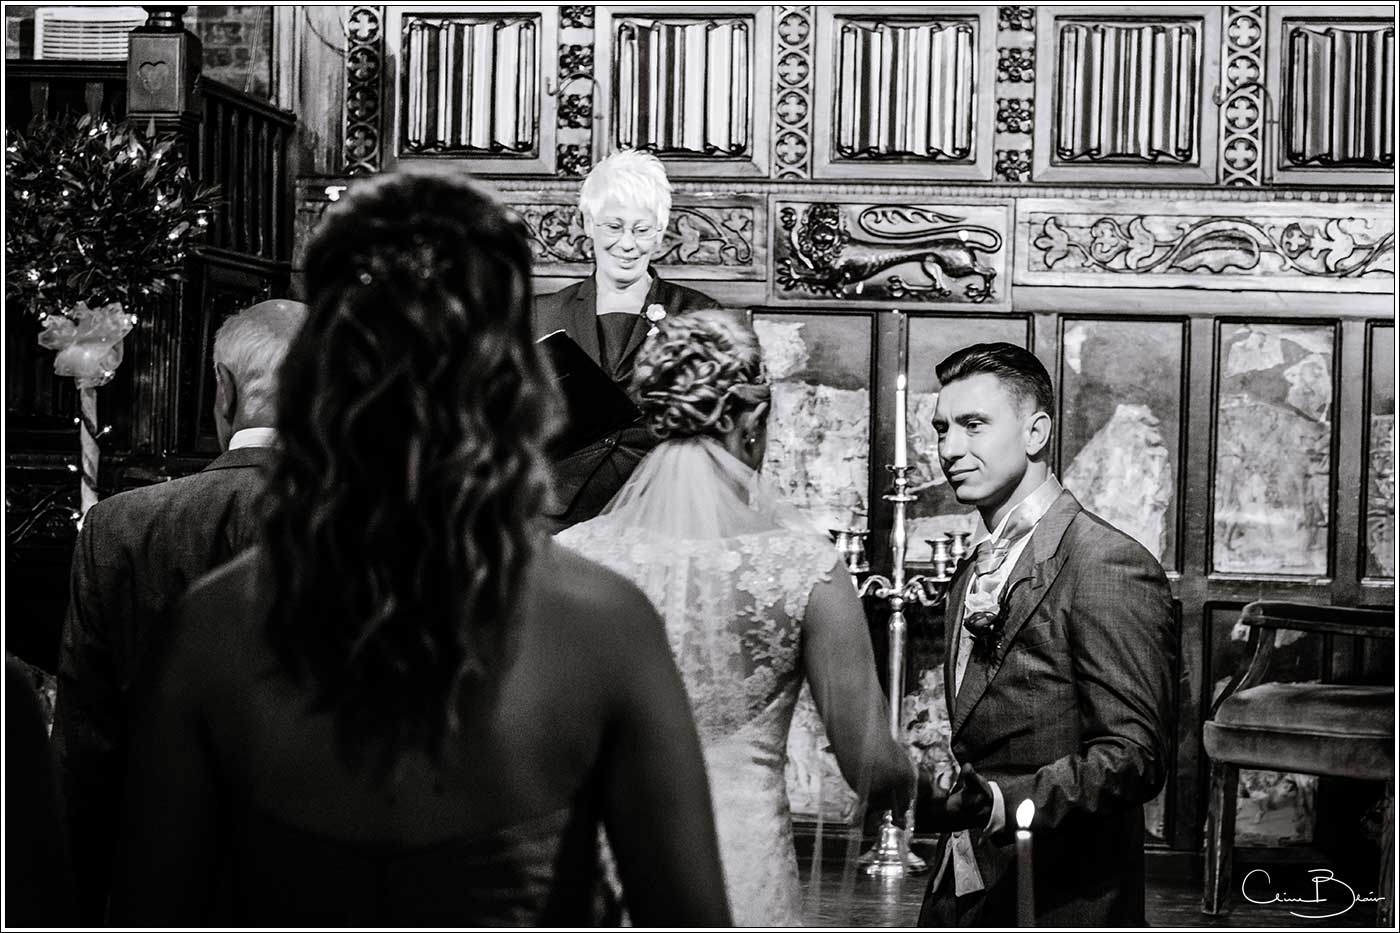 Coombe Abbey wedding photography showing grooming seeing bride for the first time in the Abbeygate